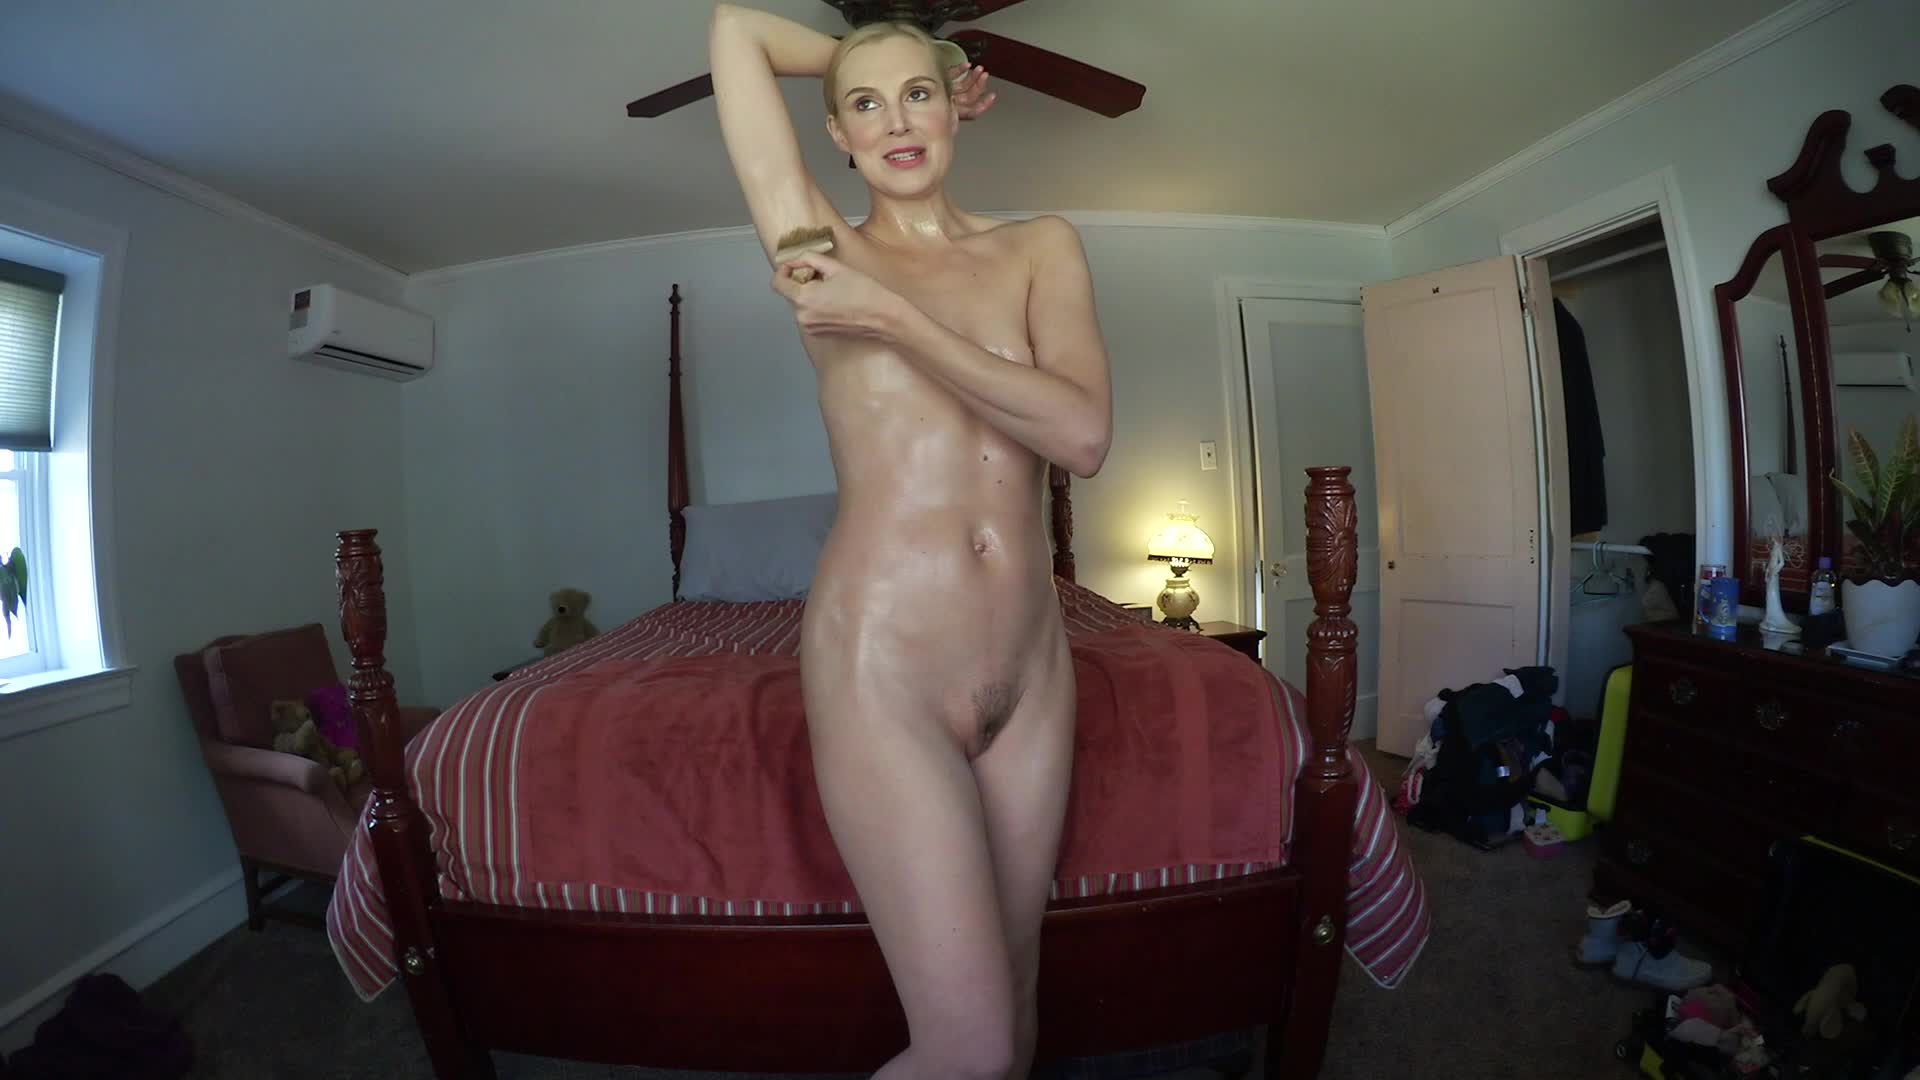 """""""Ariel Anderssen""""  (Lotion/Oil Fetish, Erotic Nude, Playboy Style Nudes, Glamour Nude, Barefoot) Lubricating My Body! ManyVids Production"""